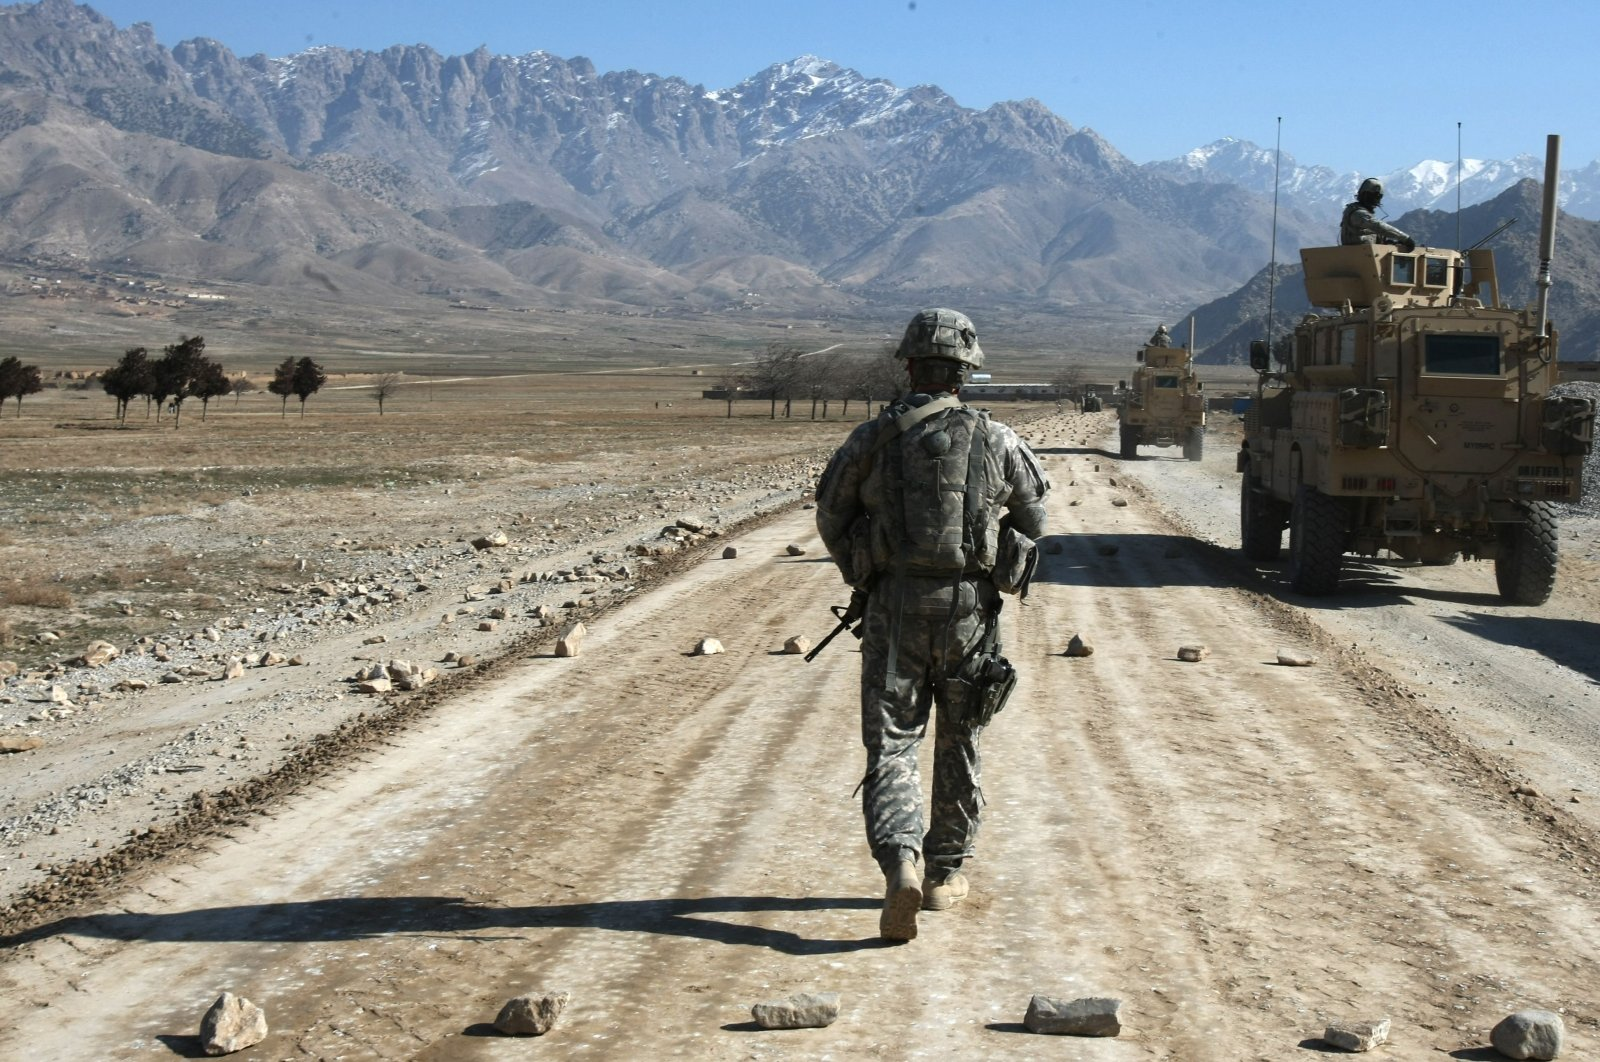 A U.S. soldier from a Provincial Reconstruction Team (PRT) walks along a road under construction near Bagram, about 60 kilometers (about 37 miles) from Kabul, Afghanistan, Jan. 11, 2010. (AFP Photo)